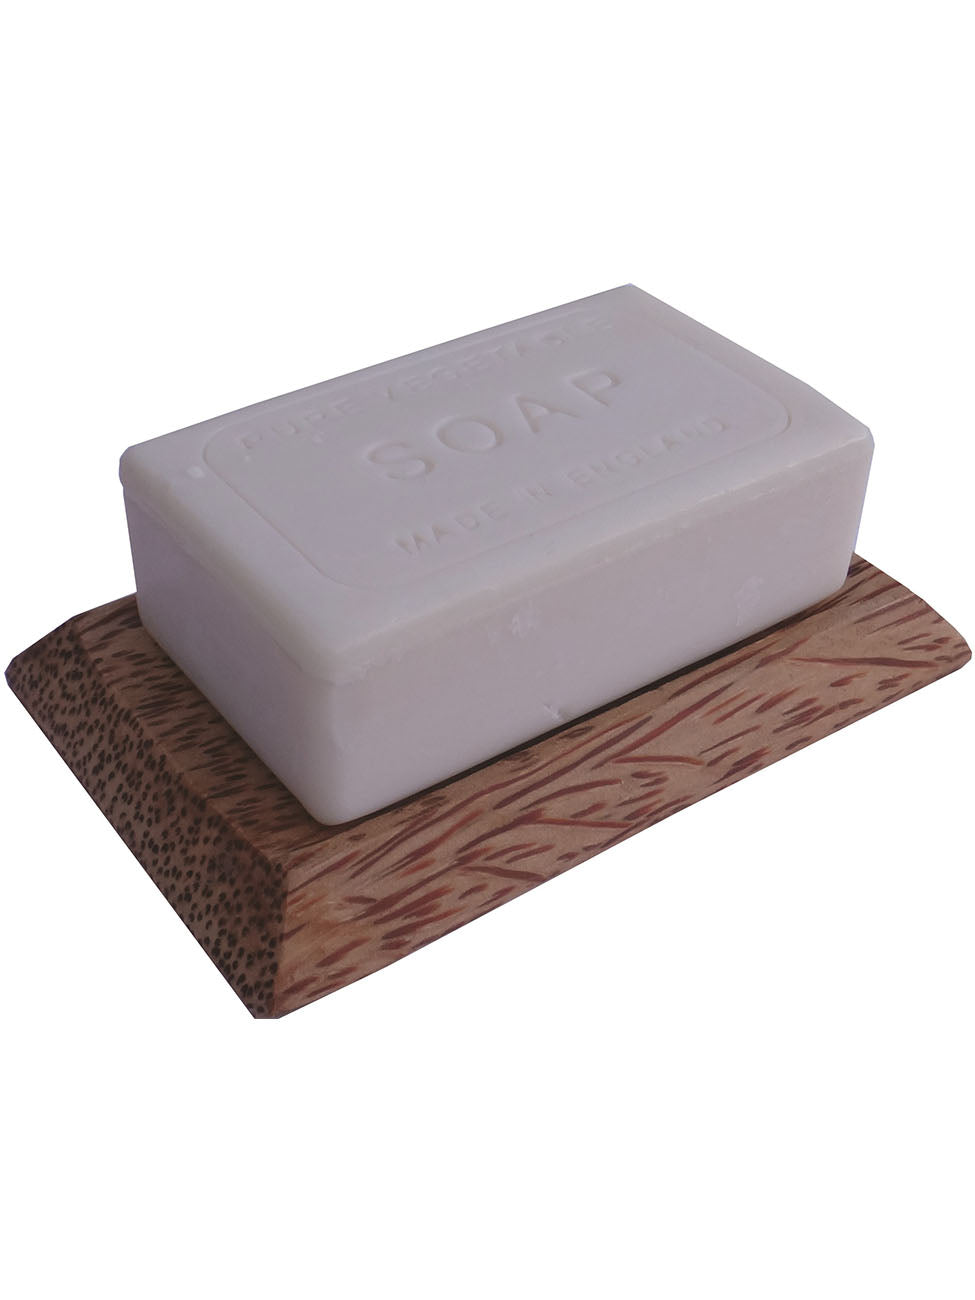 English Soap Company pure Indulgence Bath Soap - Lavender & Calendula